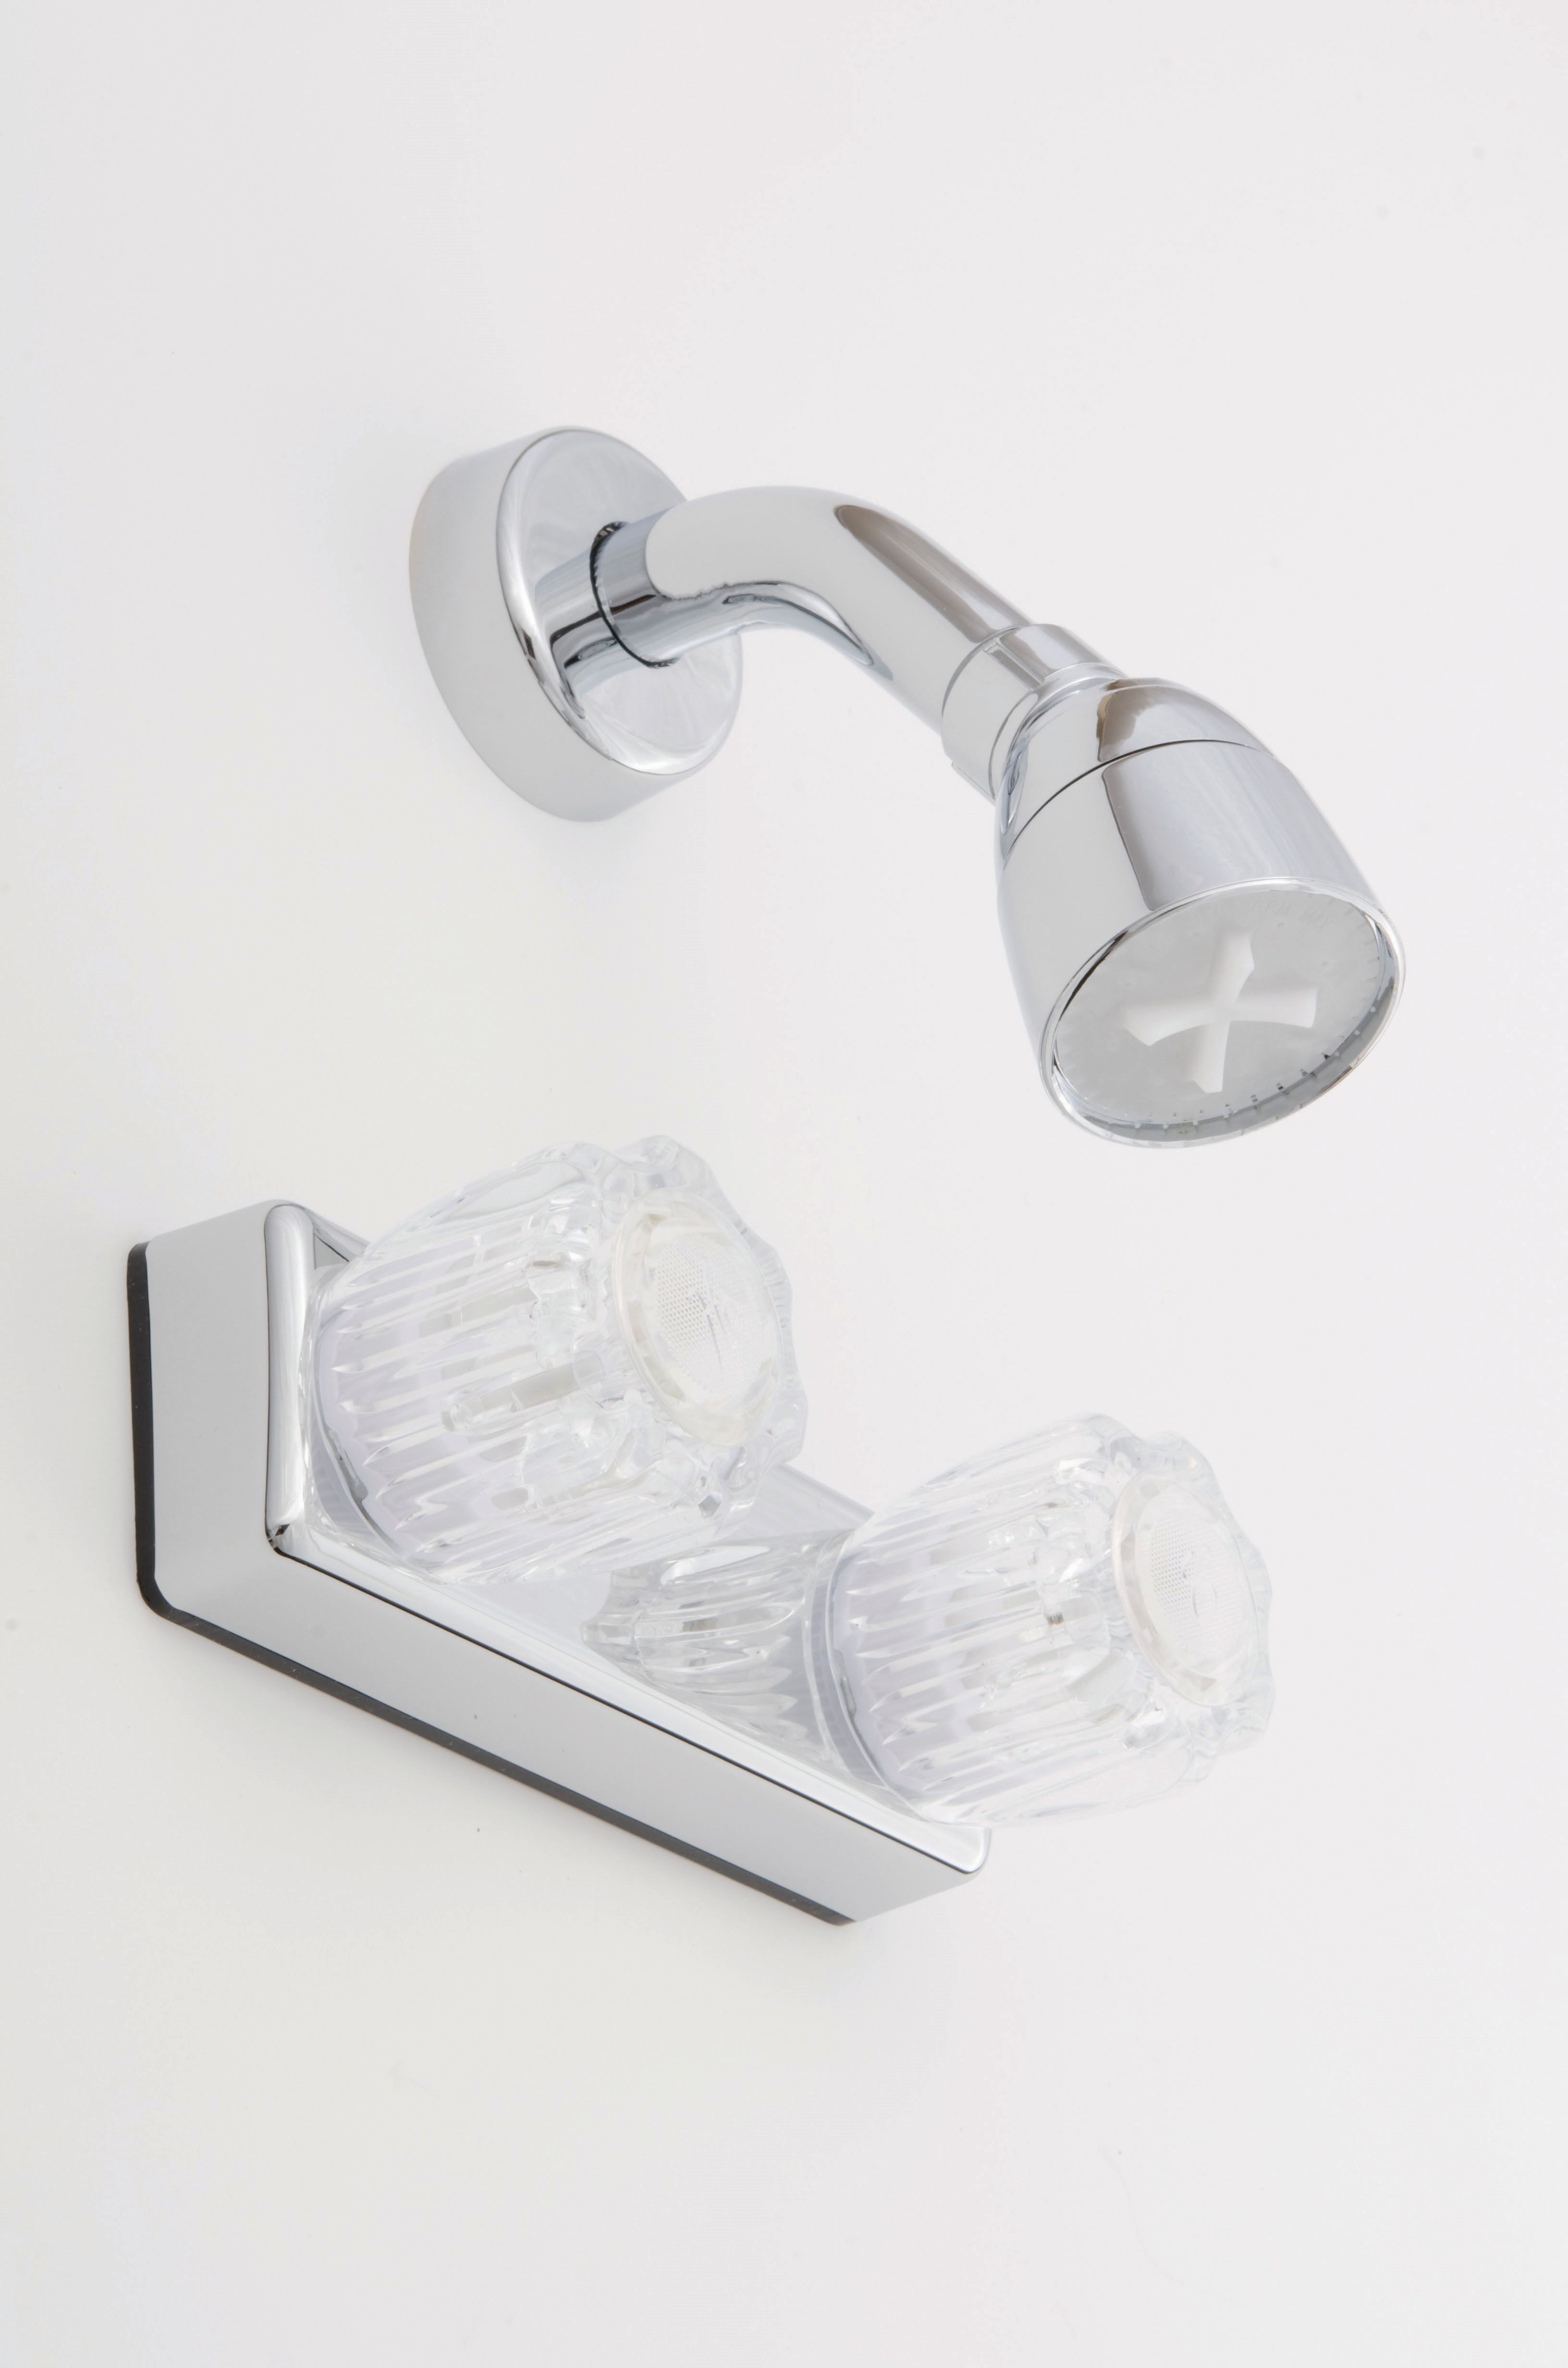 Empire Brass - RV Faucets, Page 8